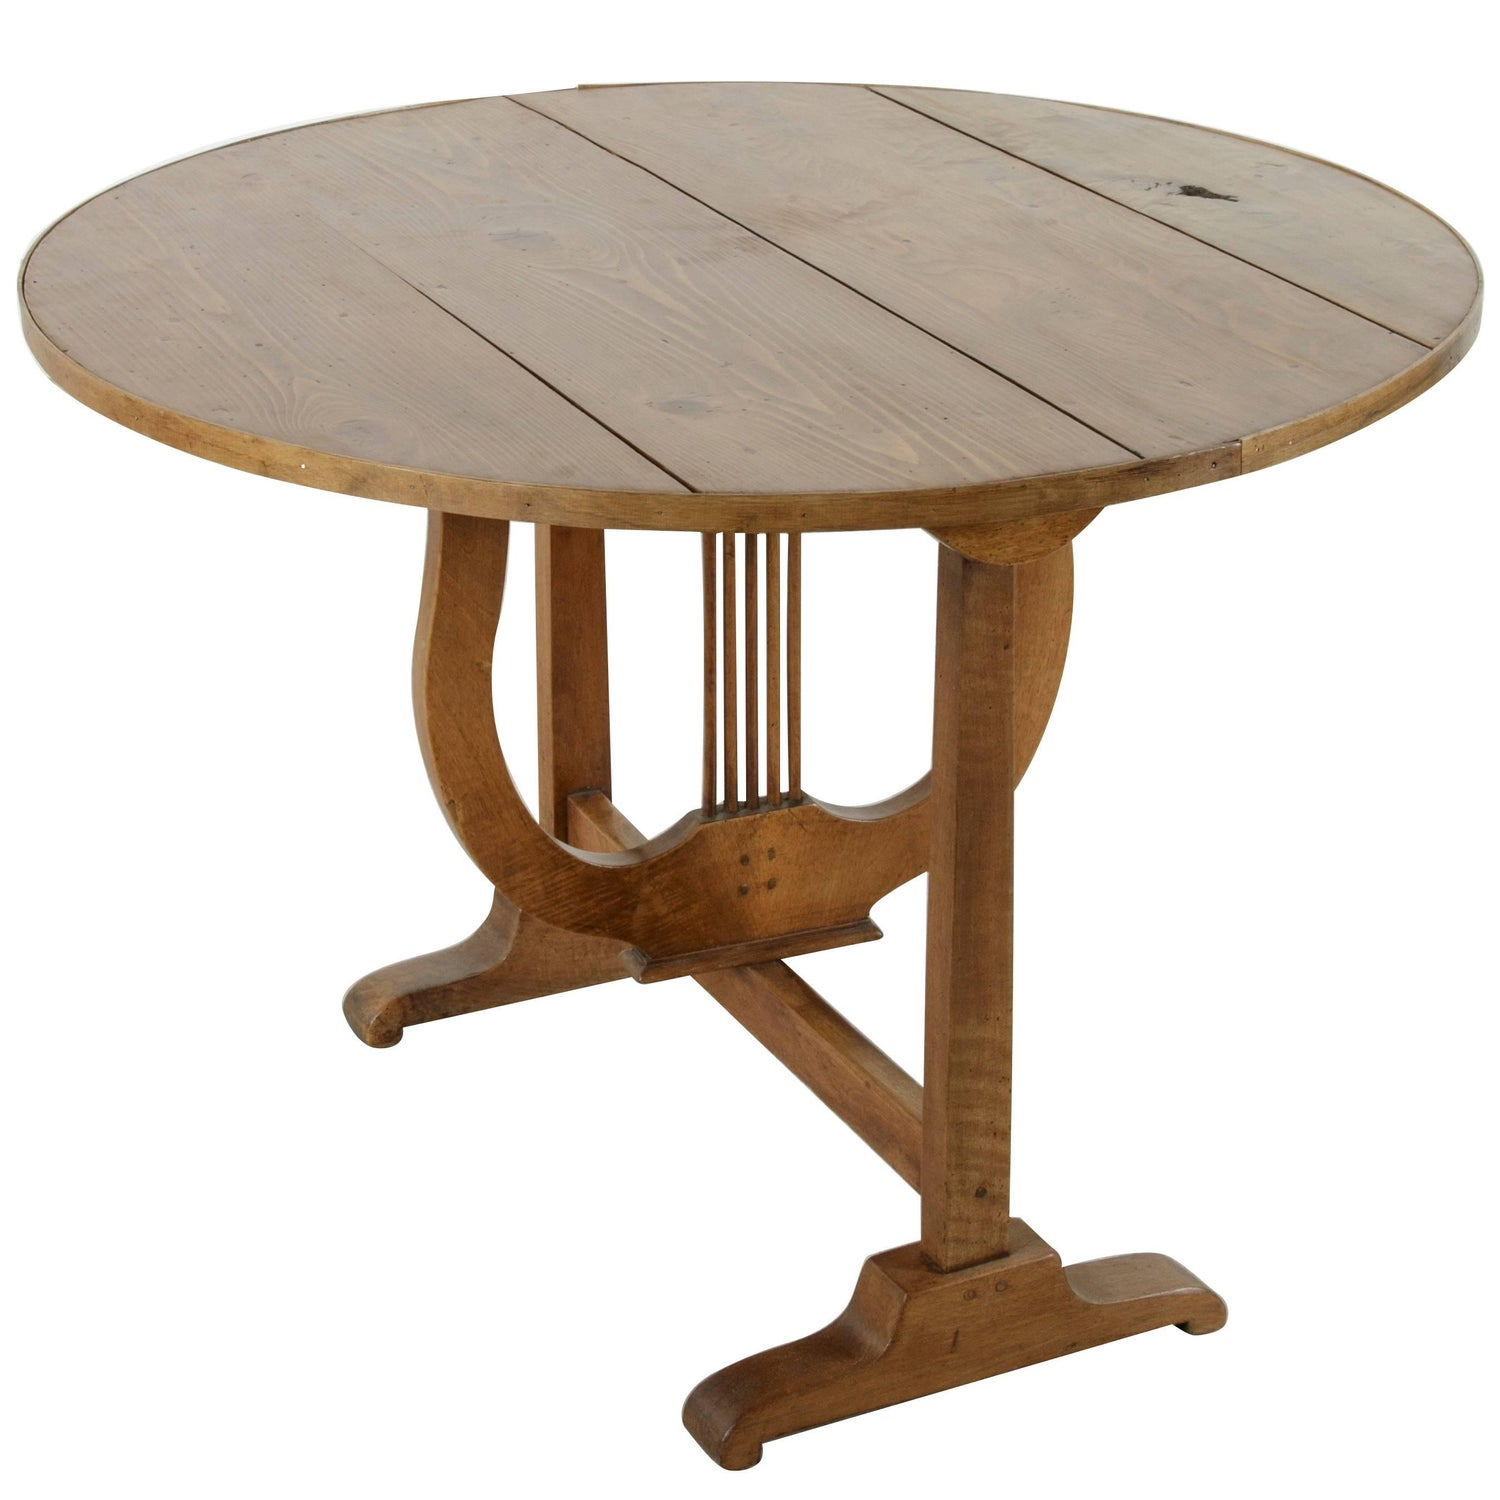 19th century french hand pegged walnut vineyard table or wine 19th century french hand pegged walnut vineyard table or wine tasting table for sale at 1stdibs geotapseo Image collections